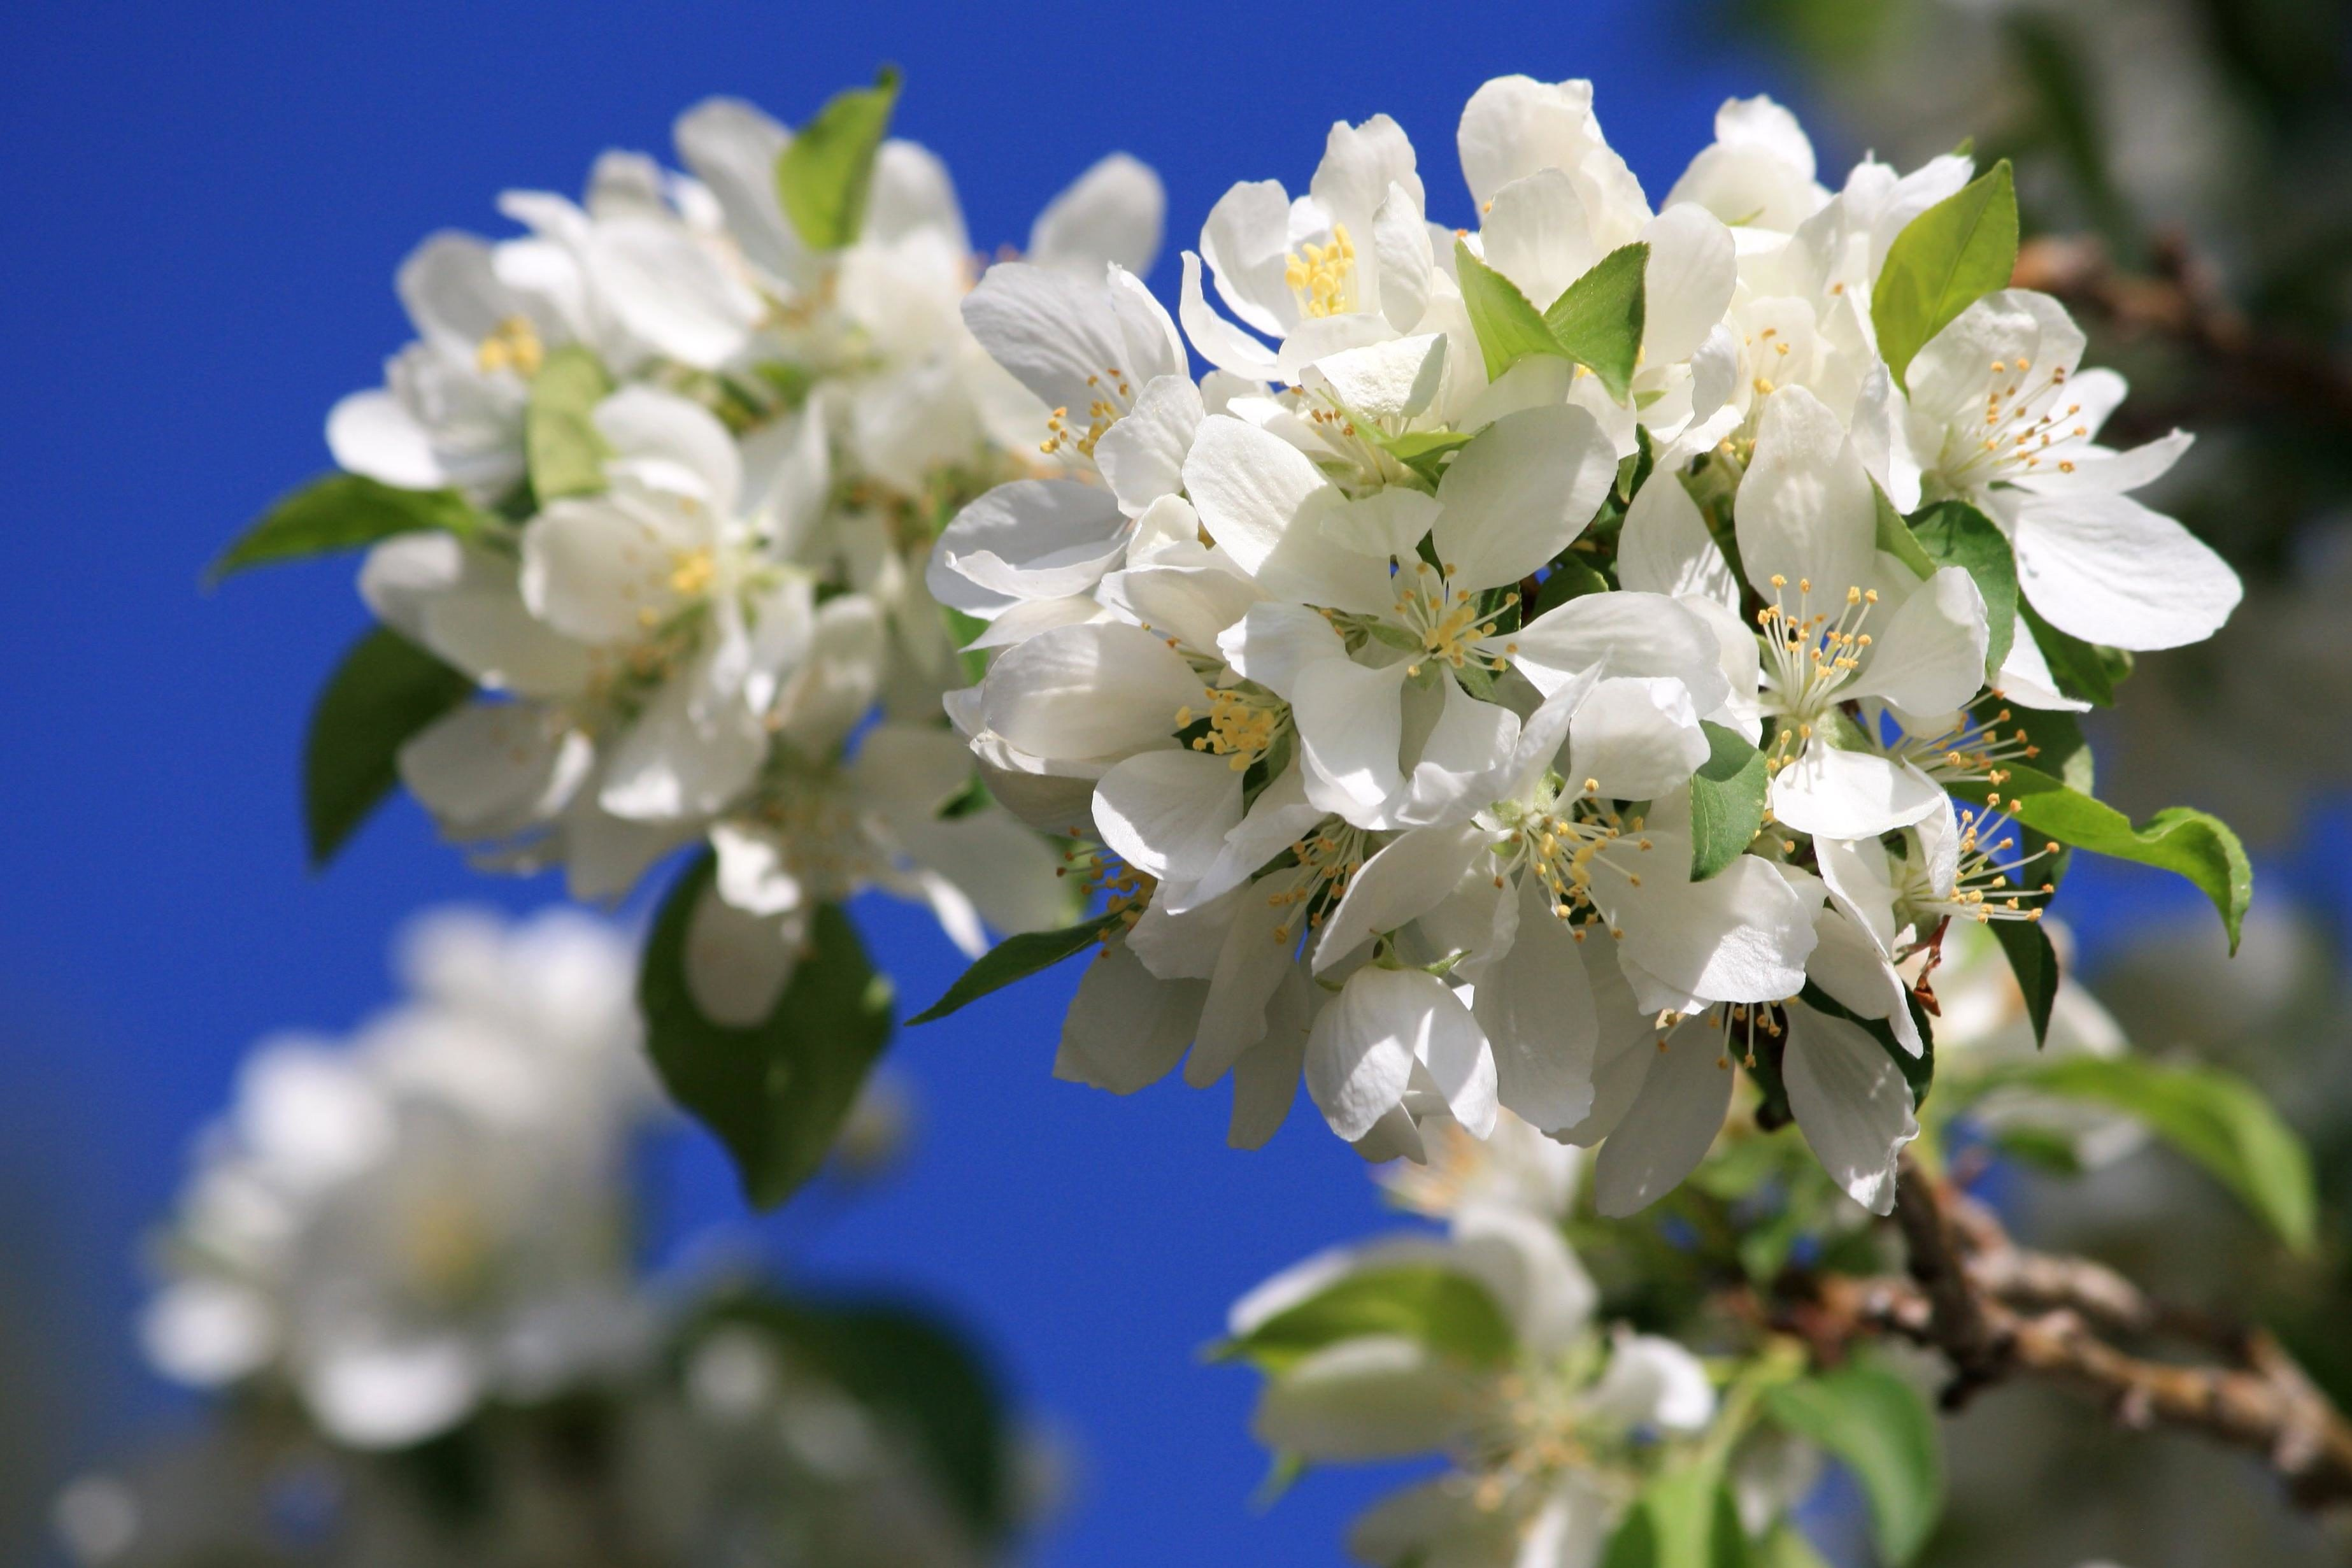 Free picture: cluster, white flowers, blossoms, tree